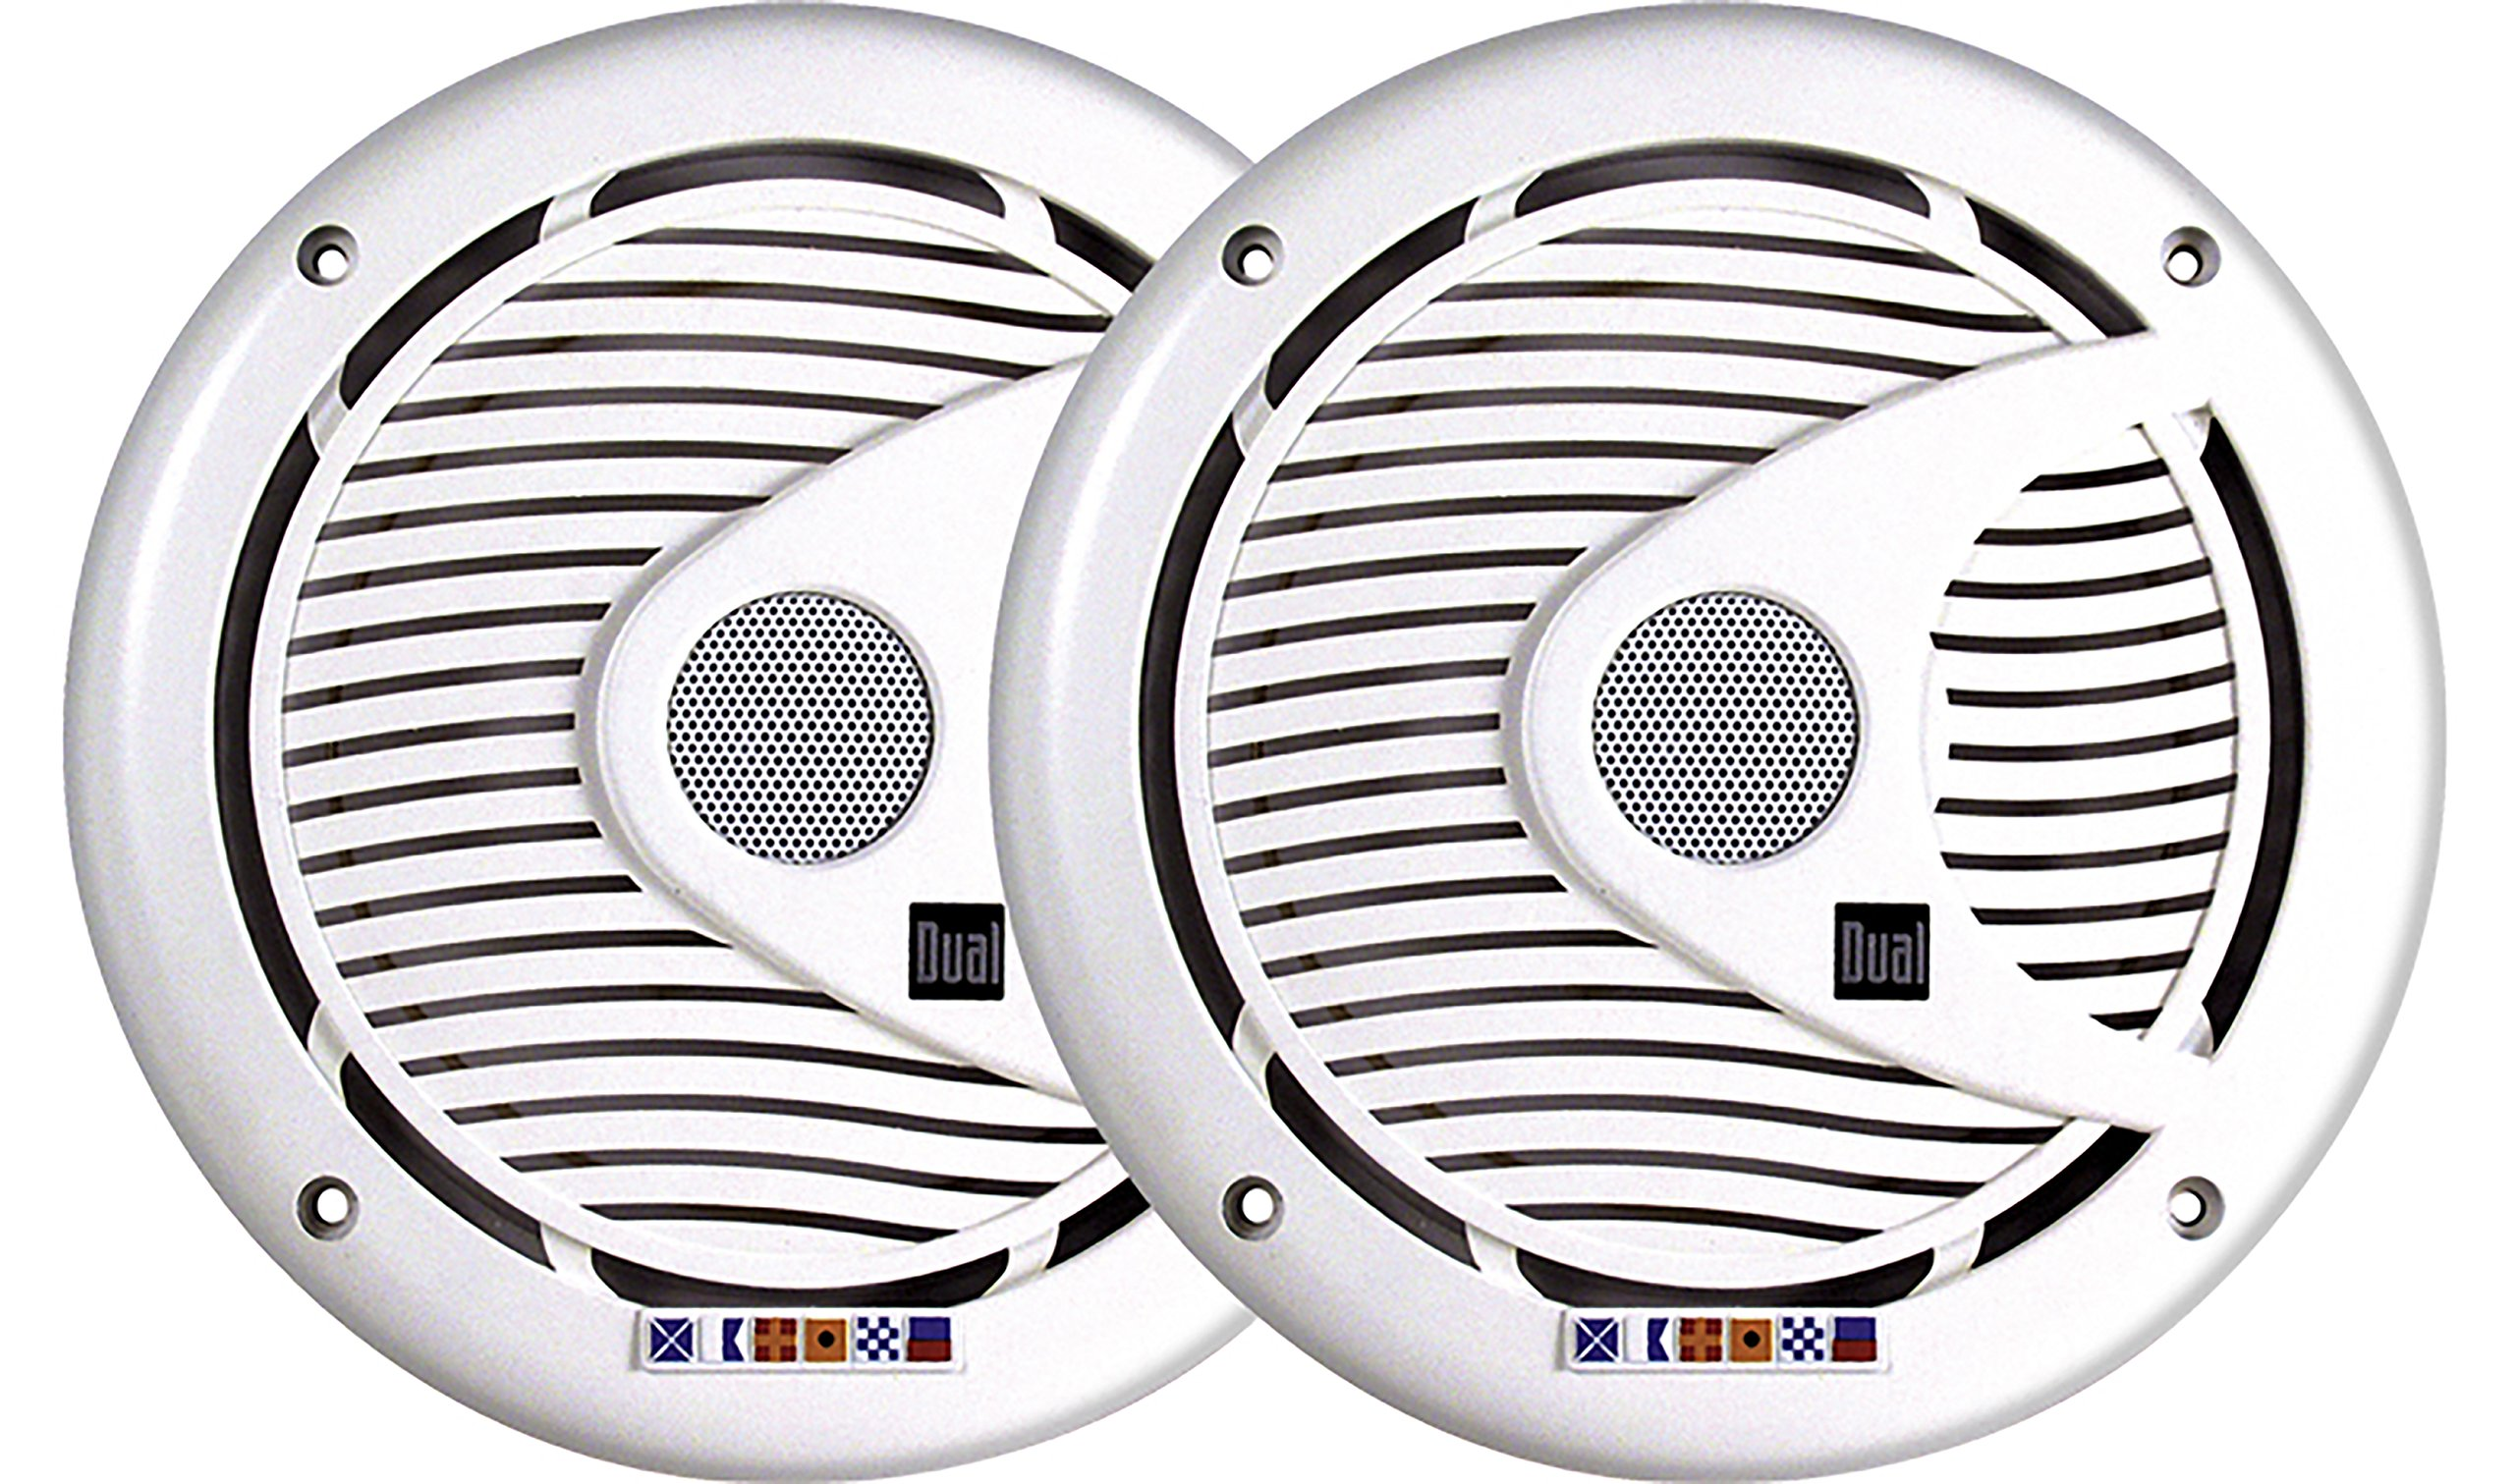 Dual Electronics DMS652 Two 6.5 inch 3-Way High Performance Marine Speakers with Silk Dome Tweeters and 175 Watts of Peak Power